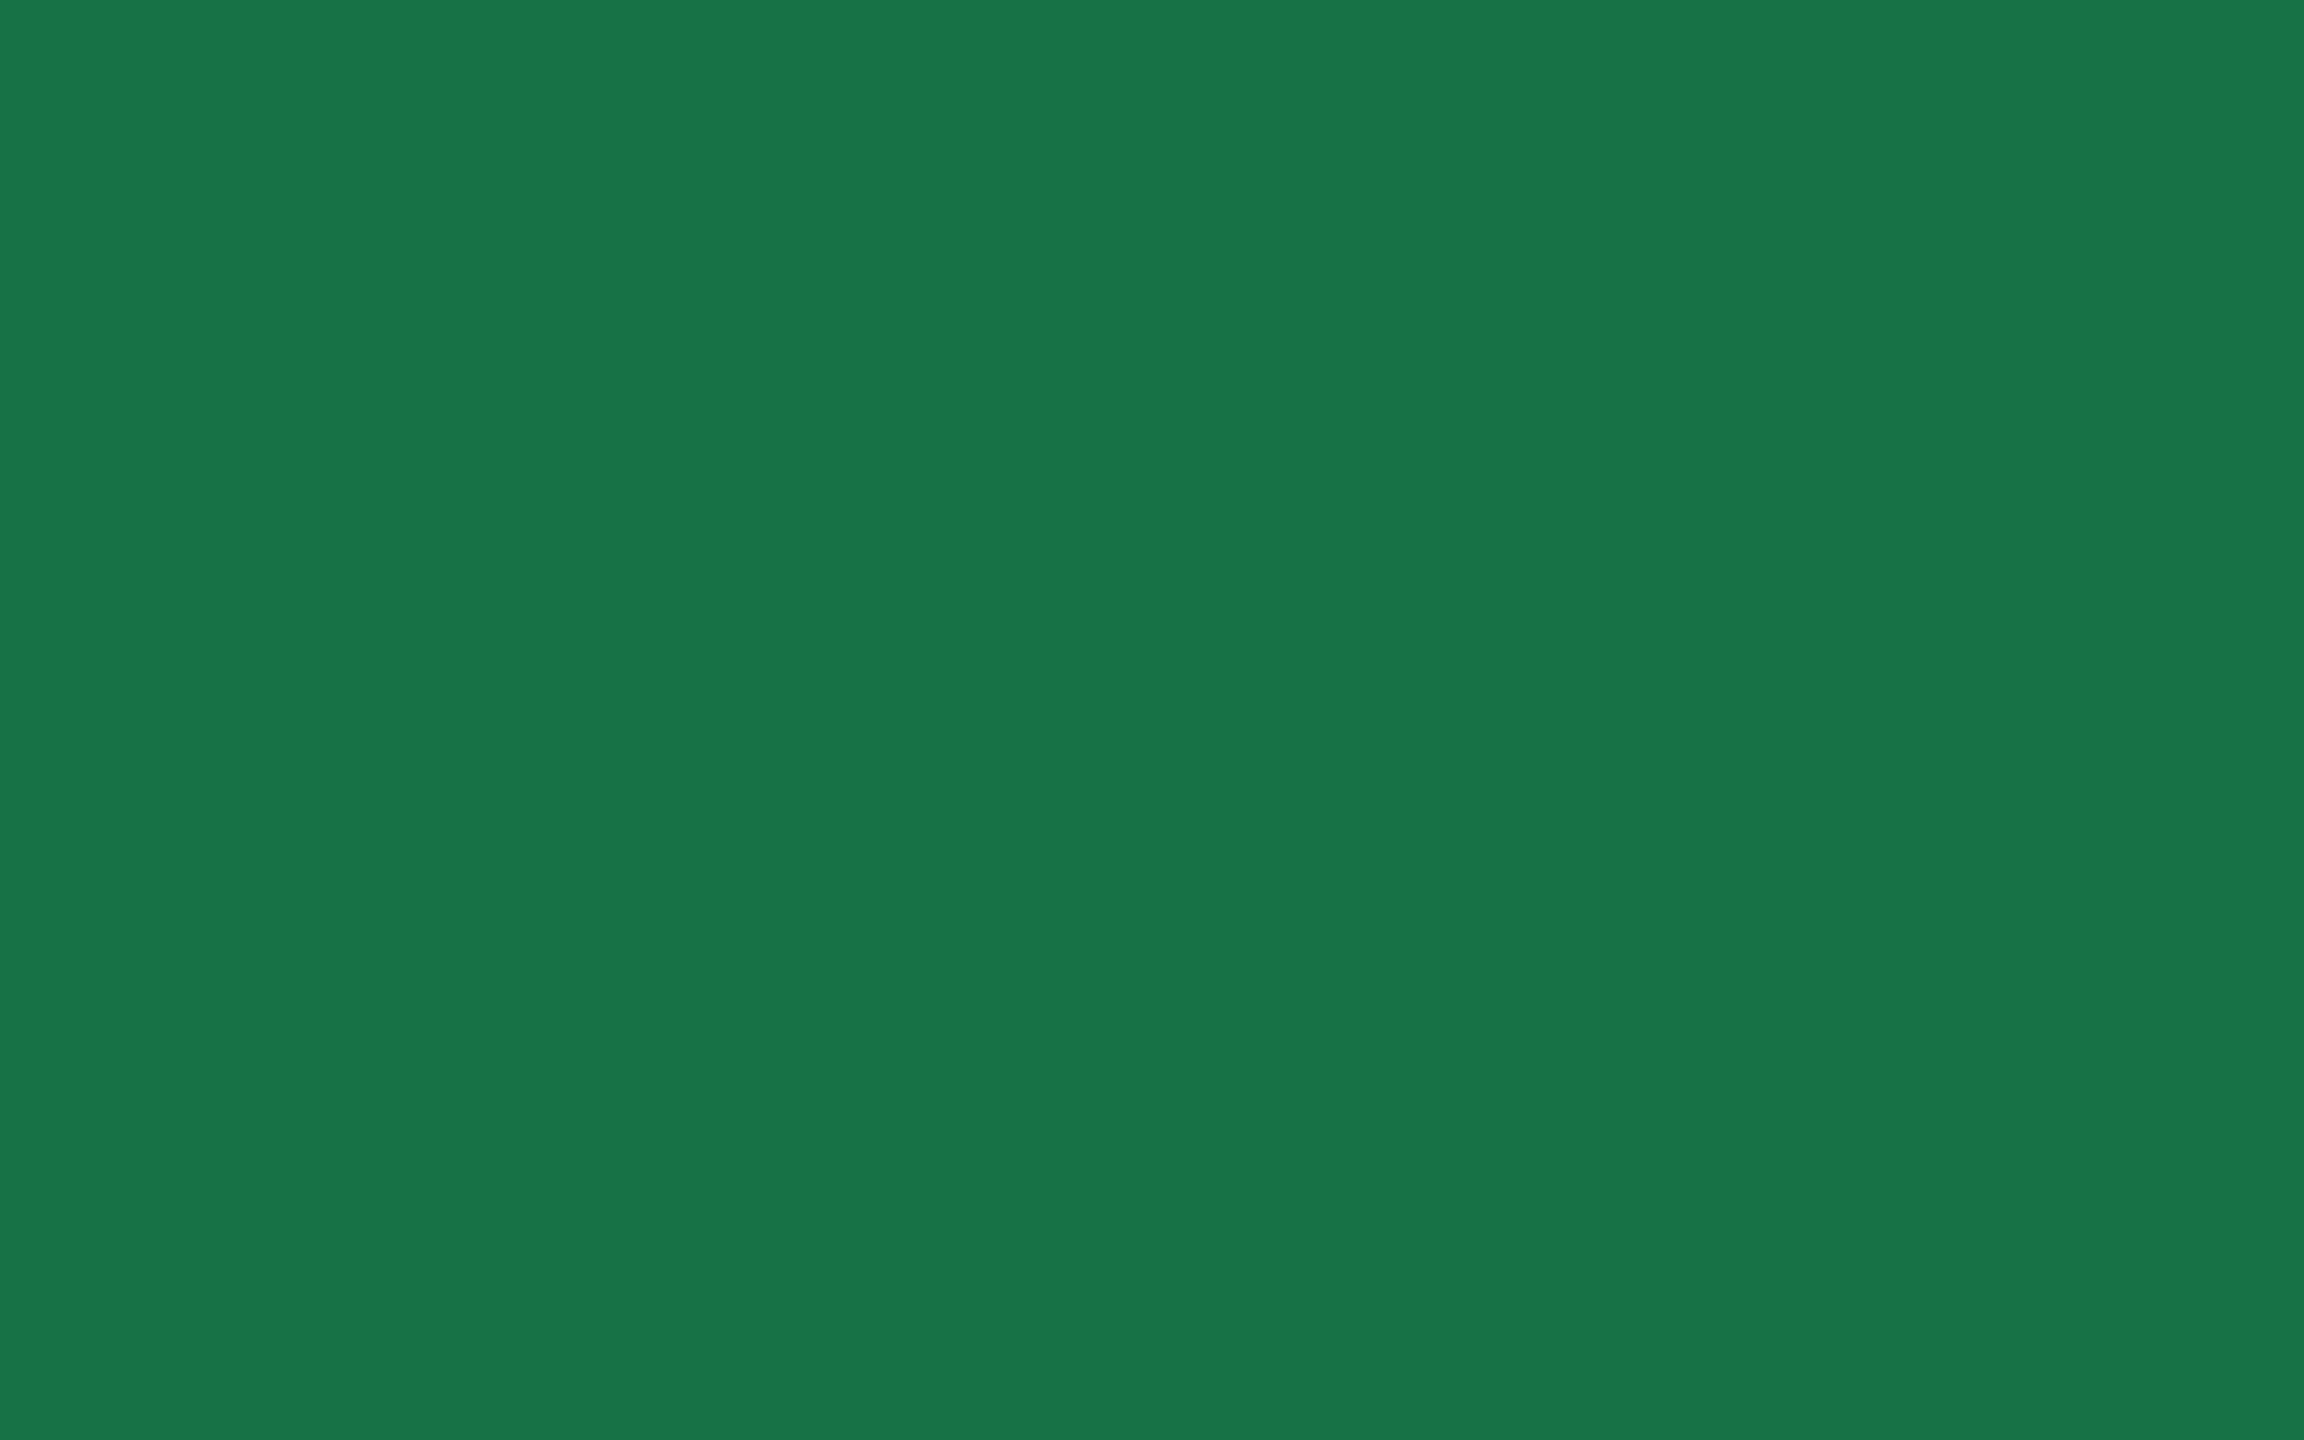 2304x1440 Dark Spring Green Solid Color Background